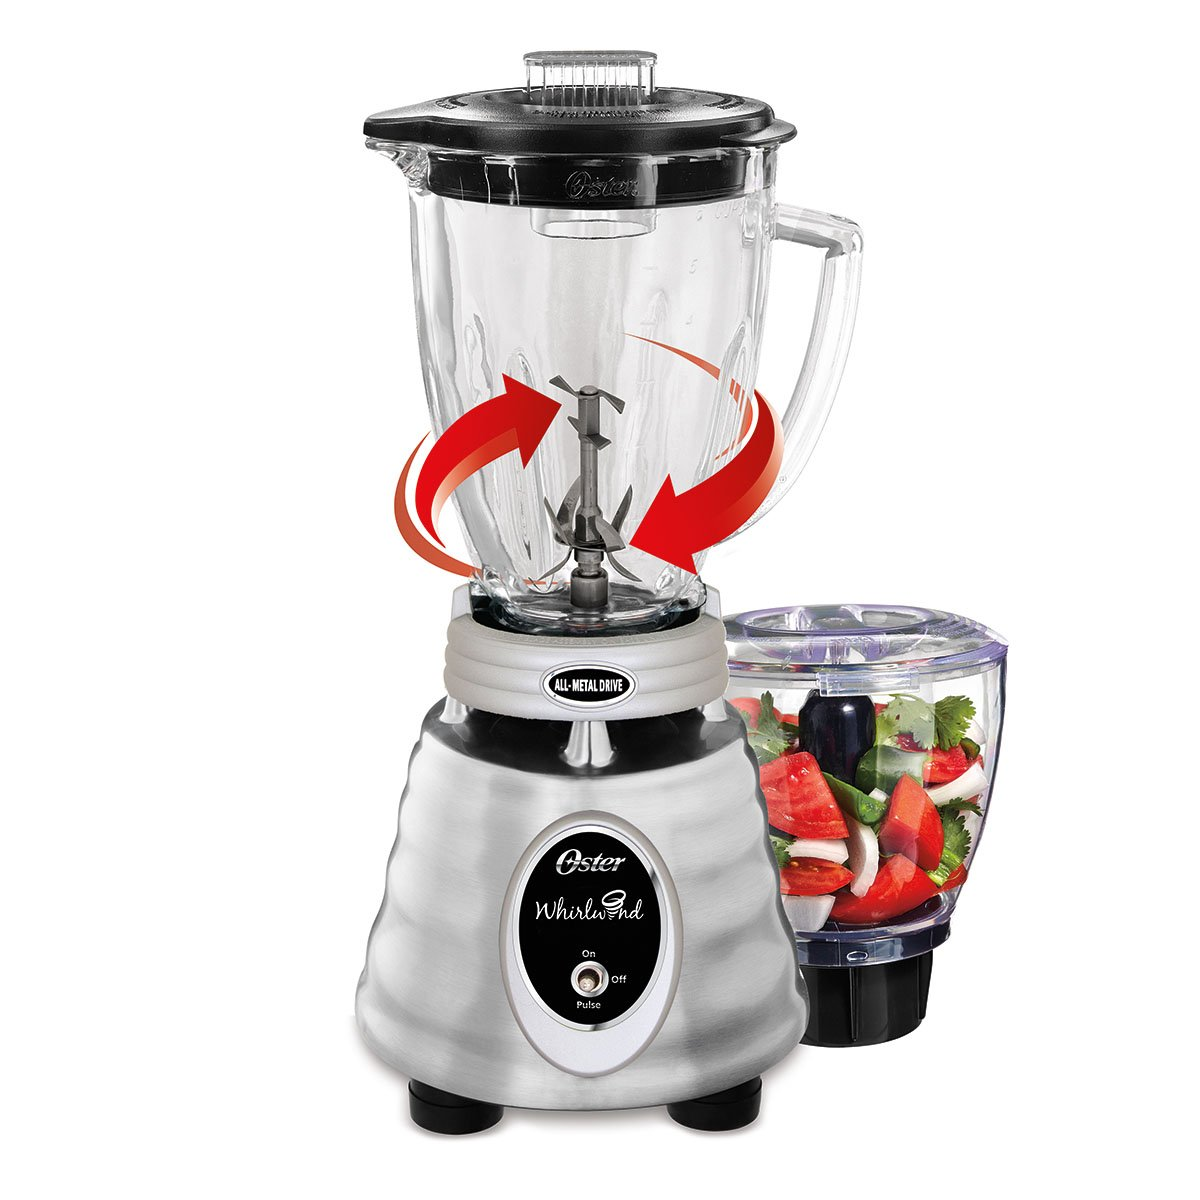 Oster Classic Series Whirlwind Blender with Glass Jar, Brushed Stainless BPMT02-SS0-000